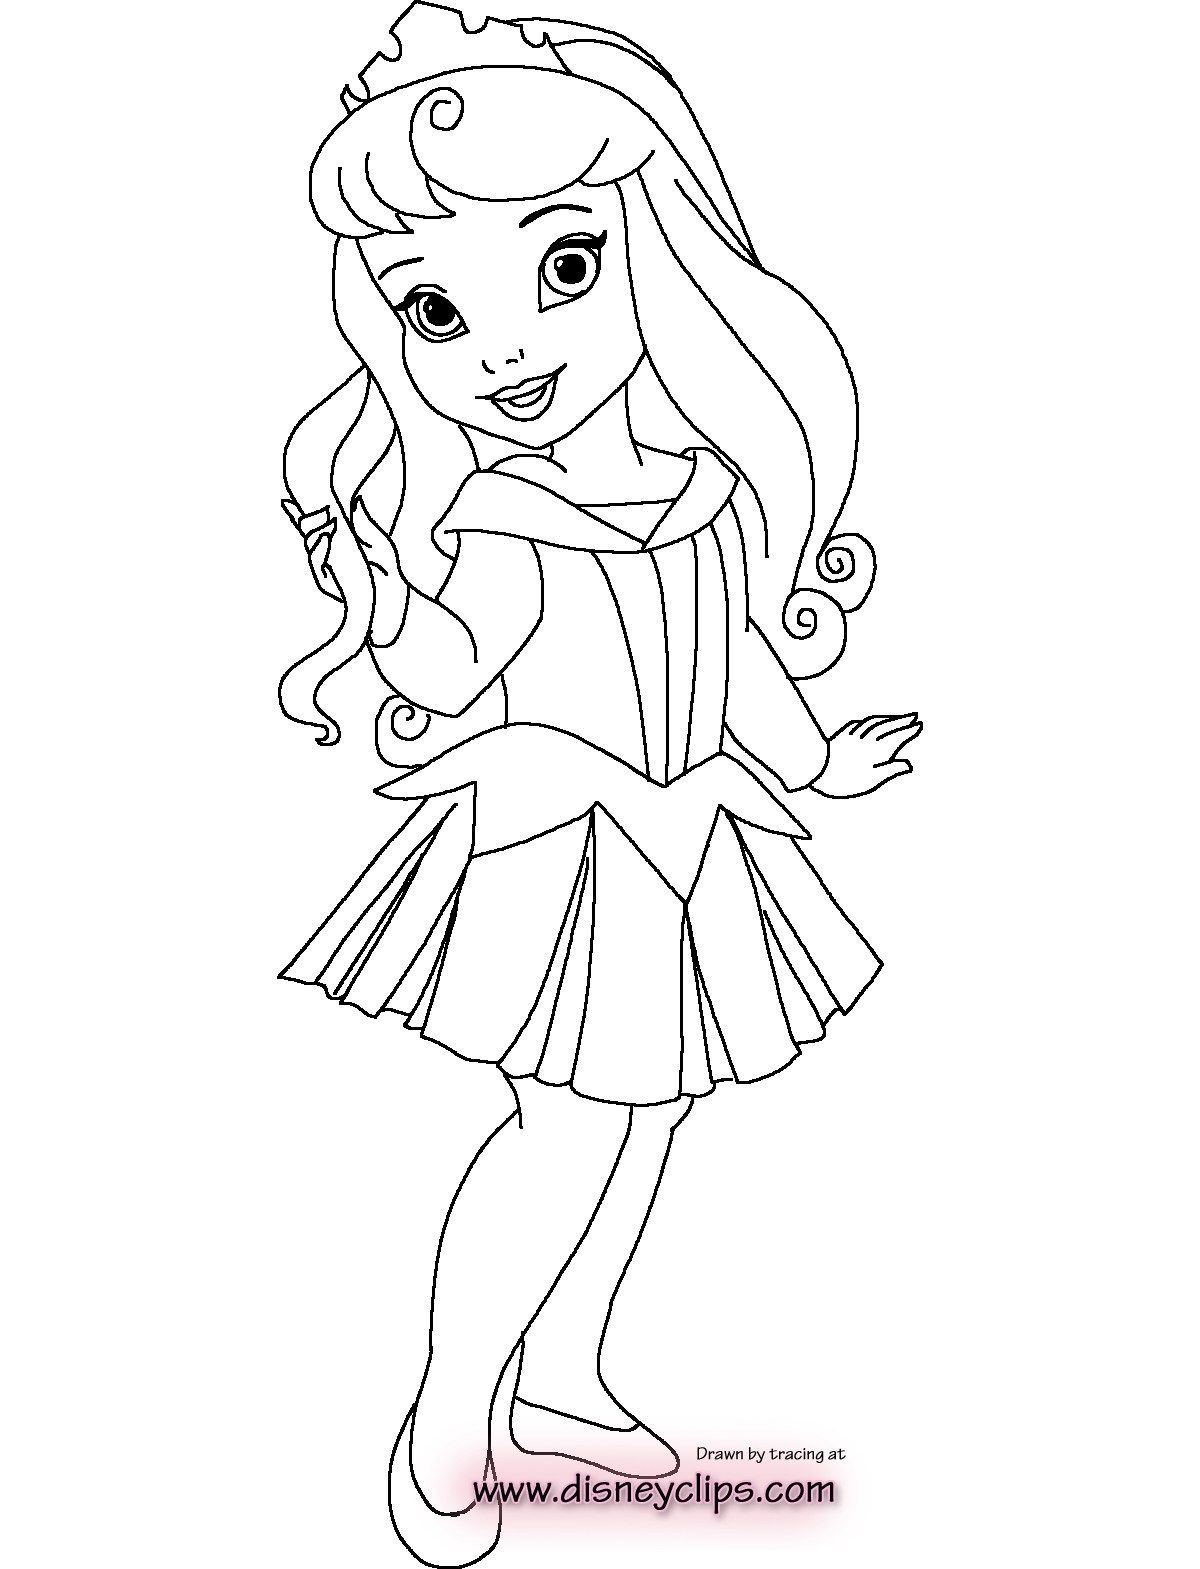 22 Great Photo Of Belle Coloring Pages Davemelillo Com Disney Princess Coloring Pages Princess Coloring Pages Disney Princess Colors